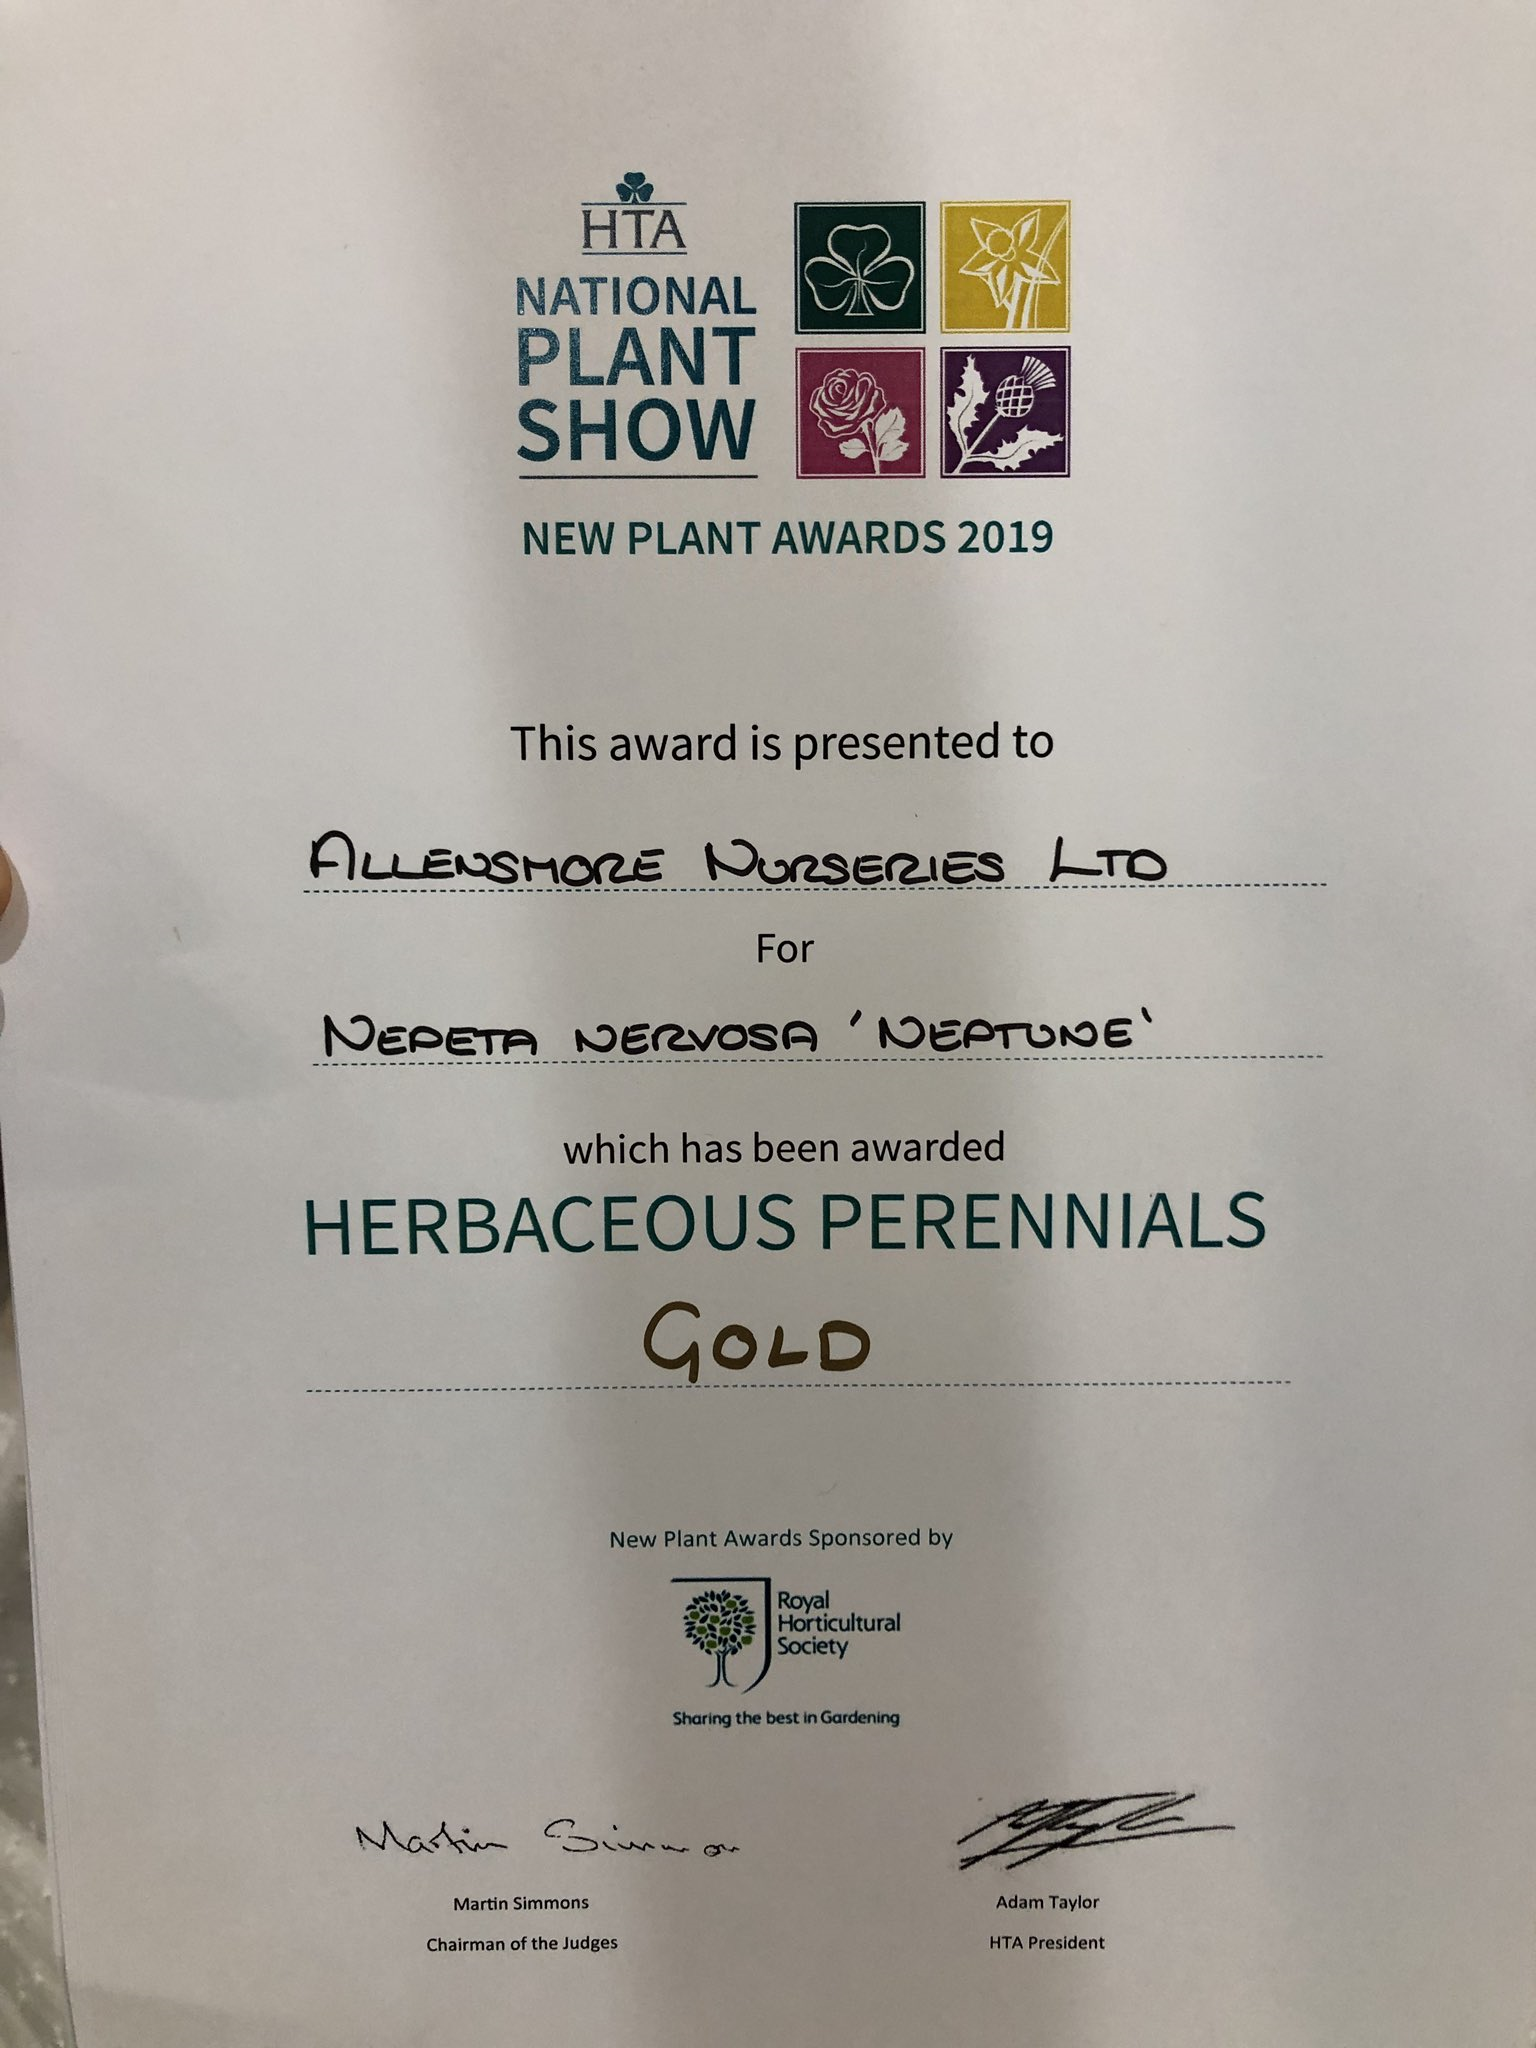 HTA New Plant Awards 2019